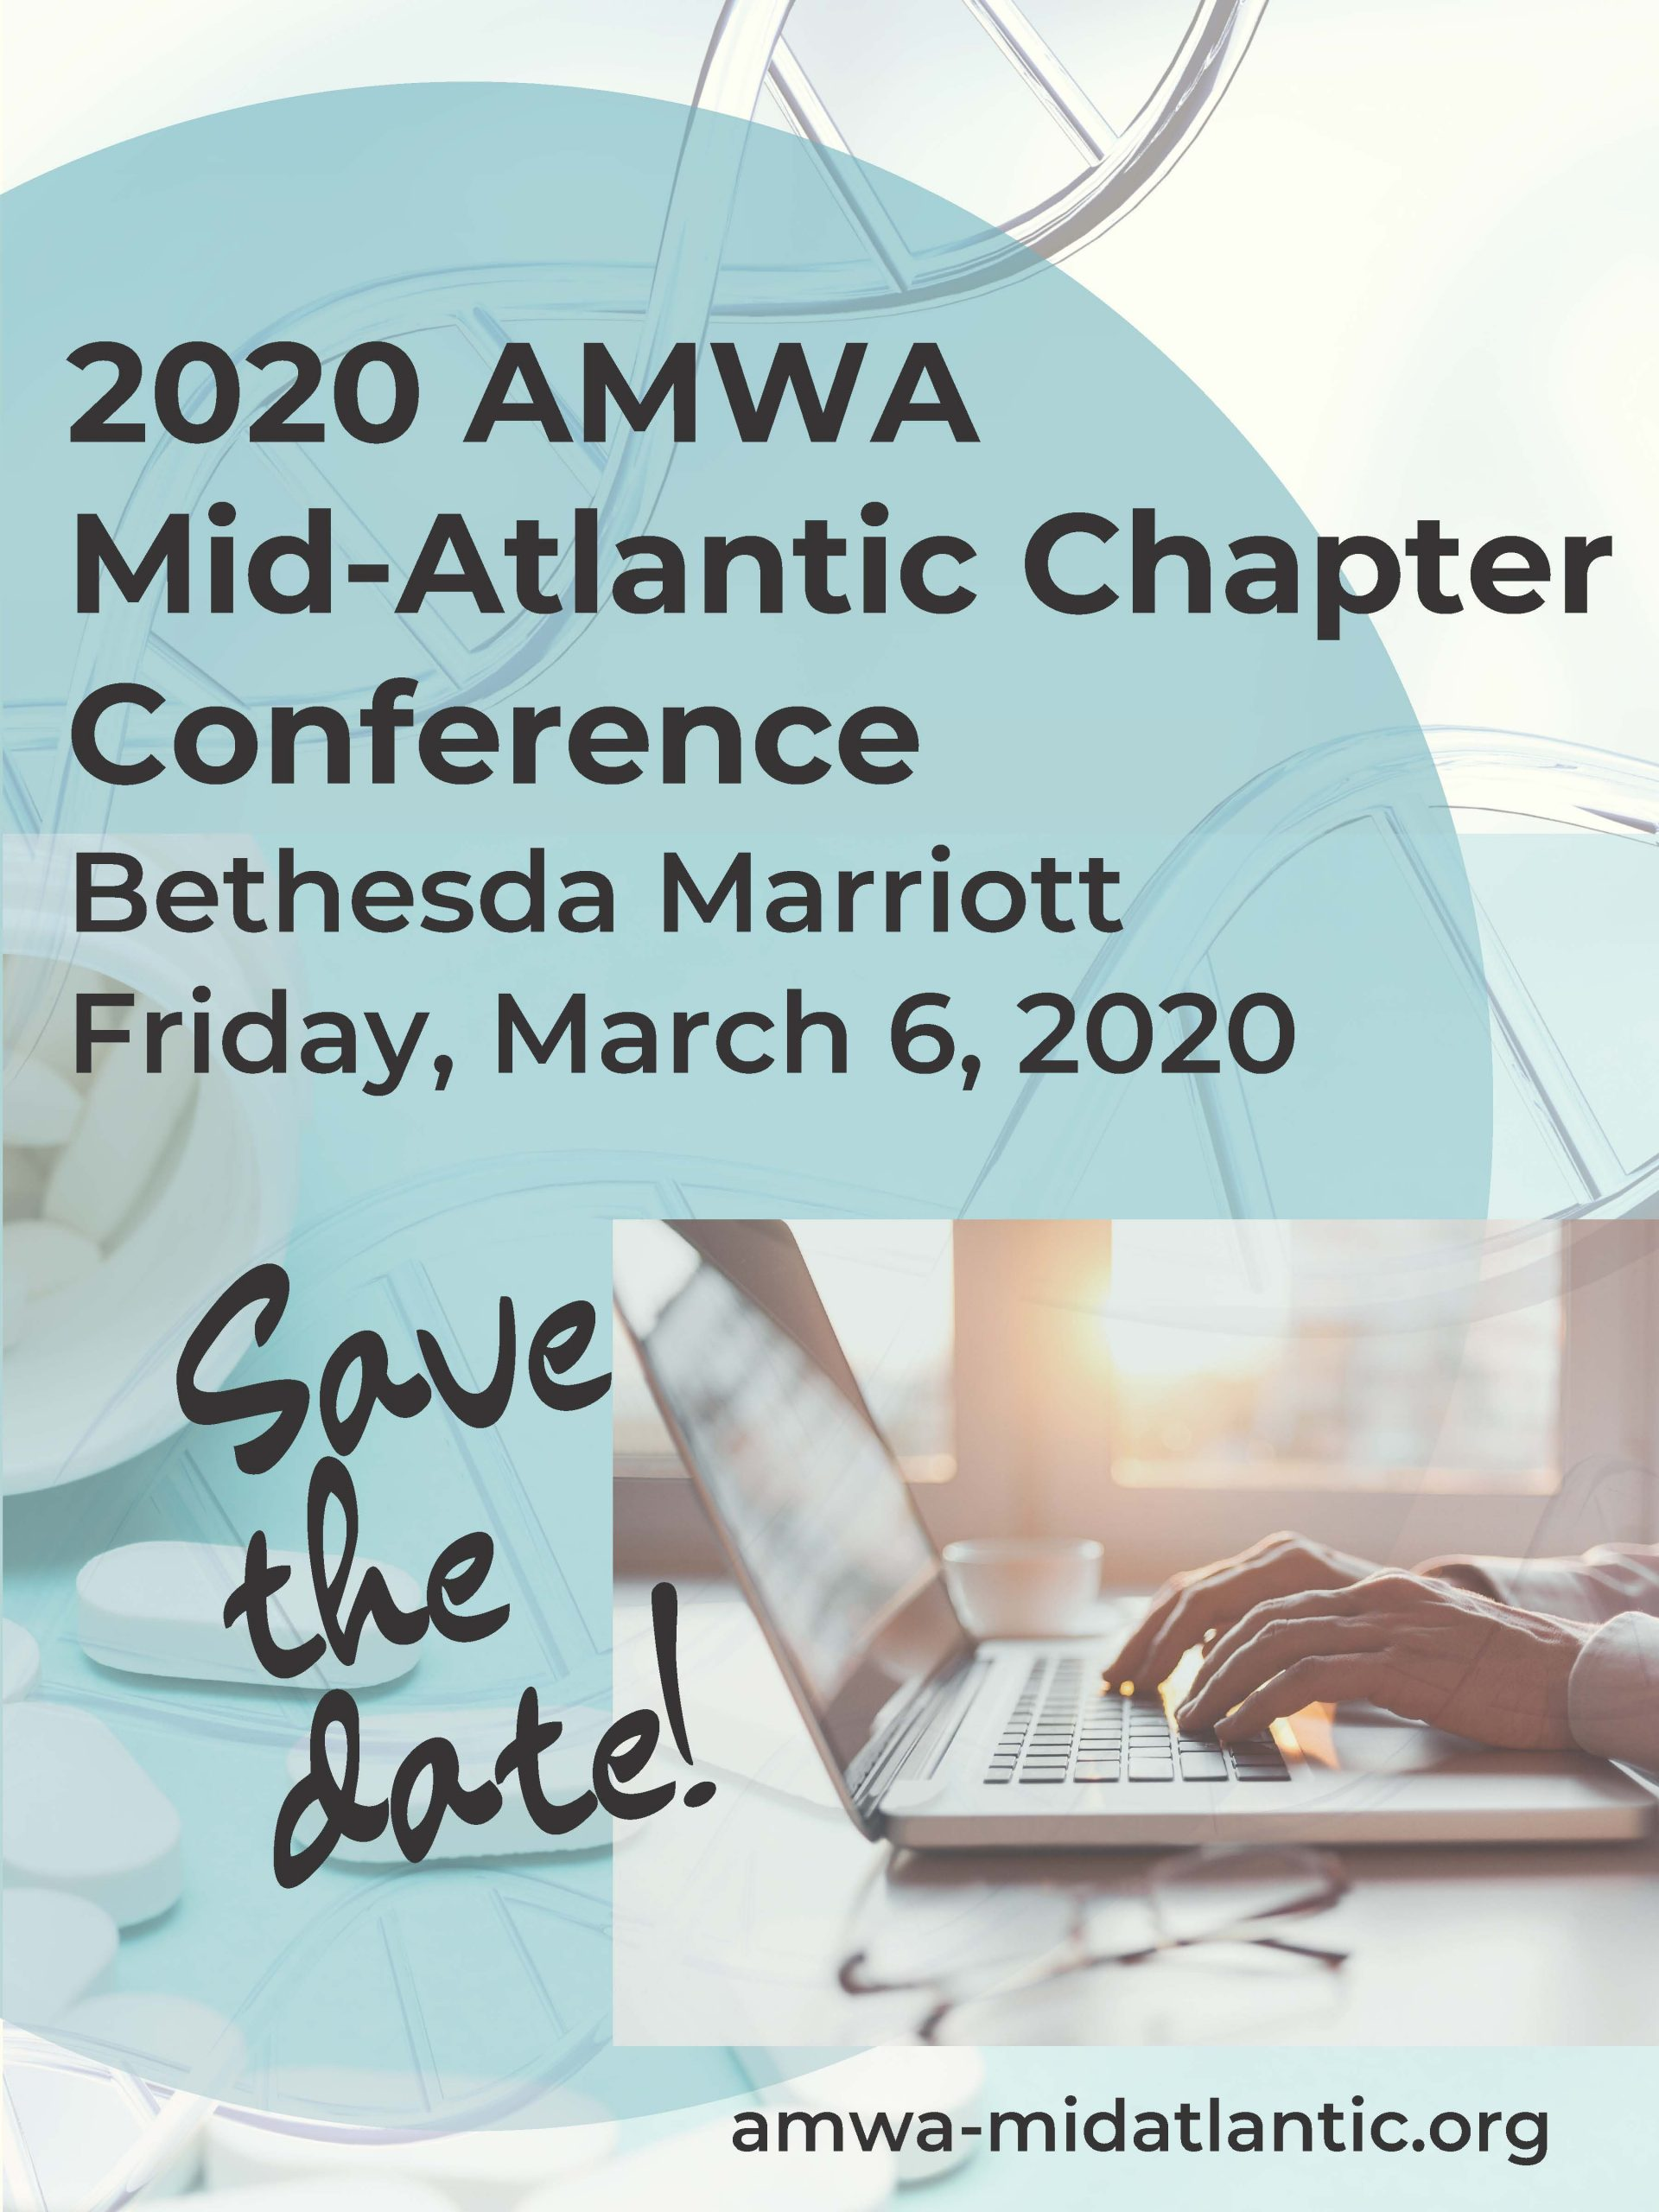 2020 AMWA Mid-Atlantic Chapter Spring Conference, Bethesda Marriott, Friday, March 6, 2020, Save the date!